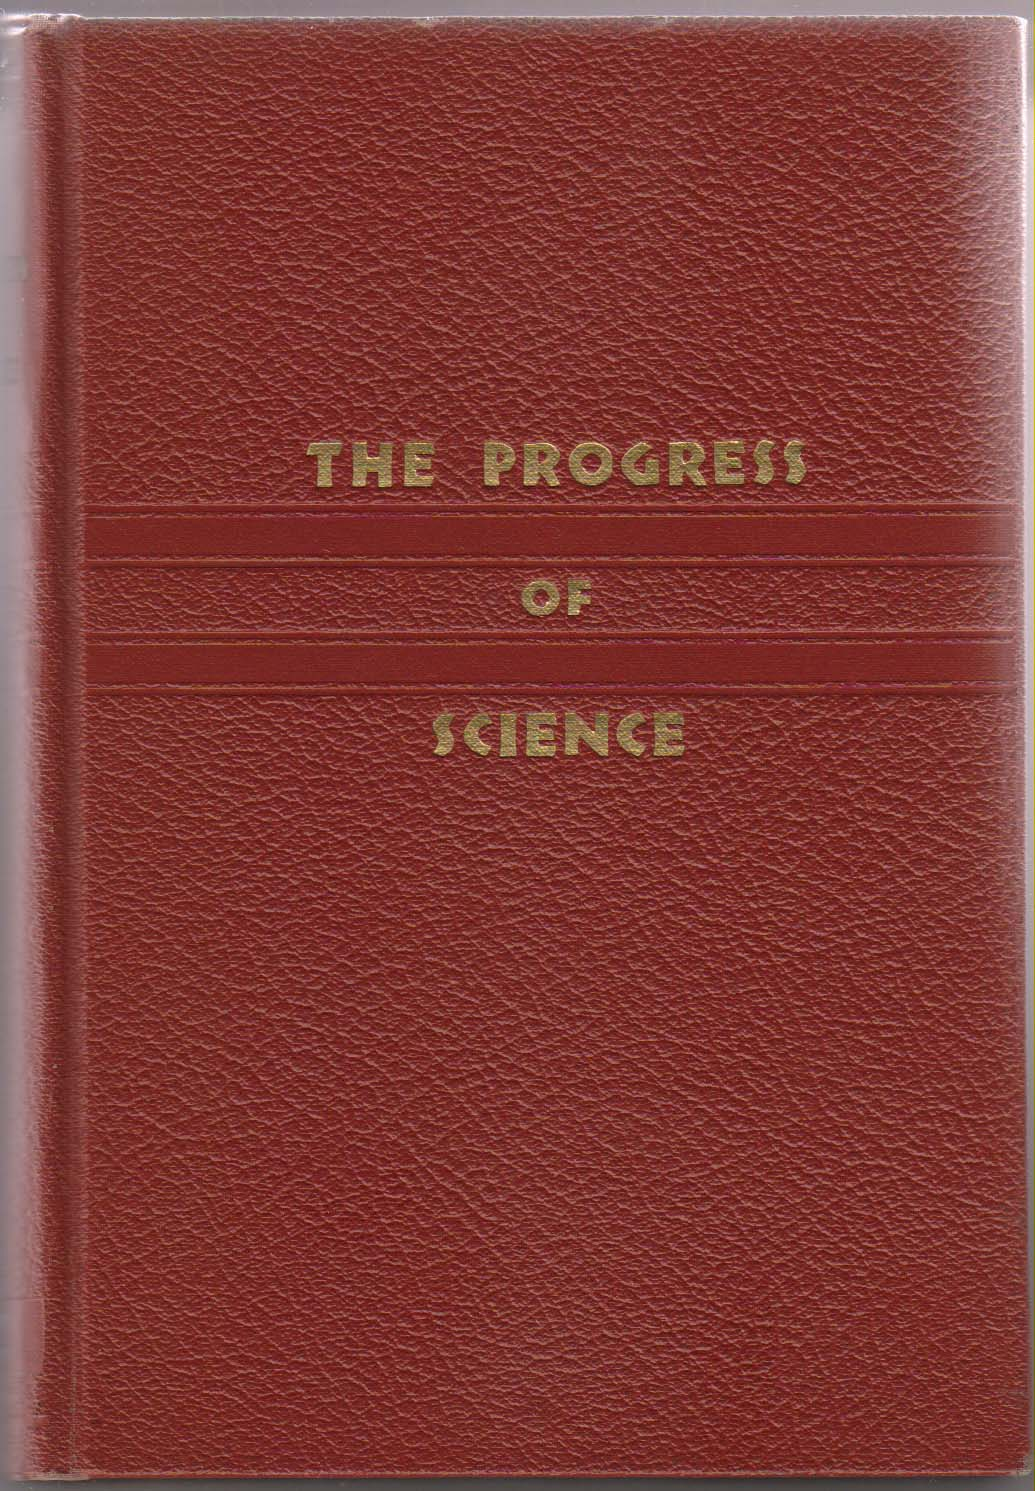 Image for The Progress of Science: a Review of 1940